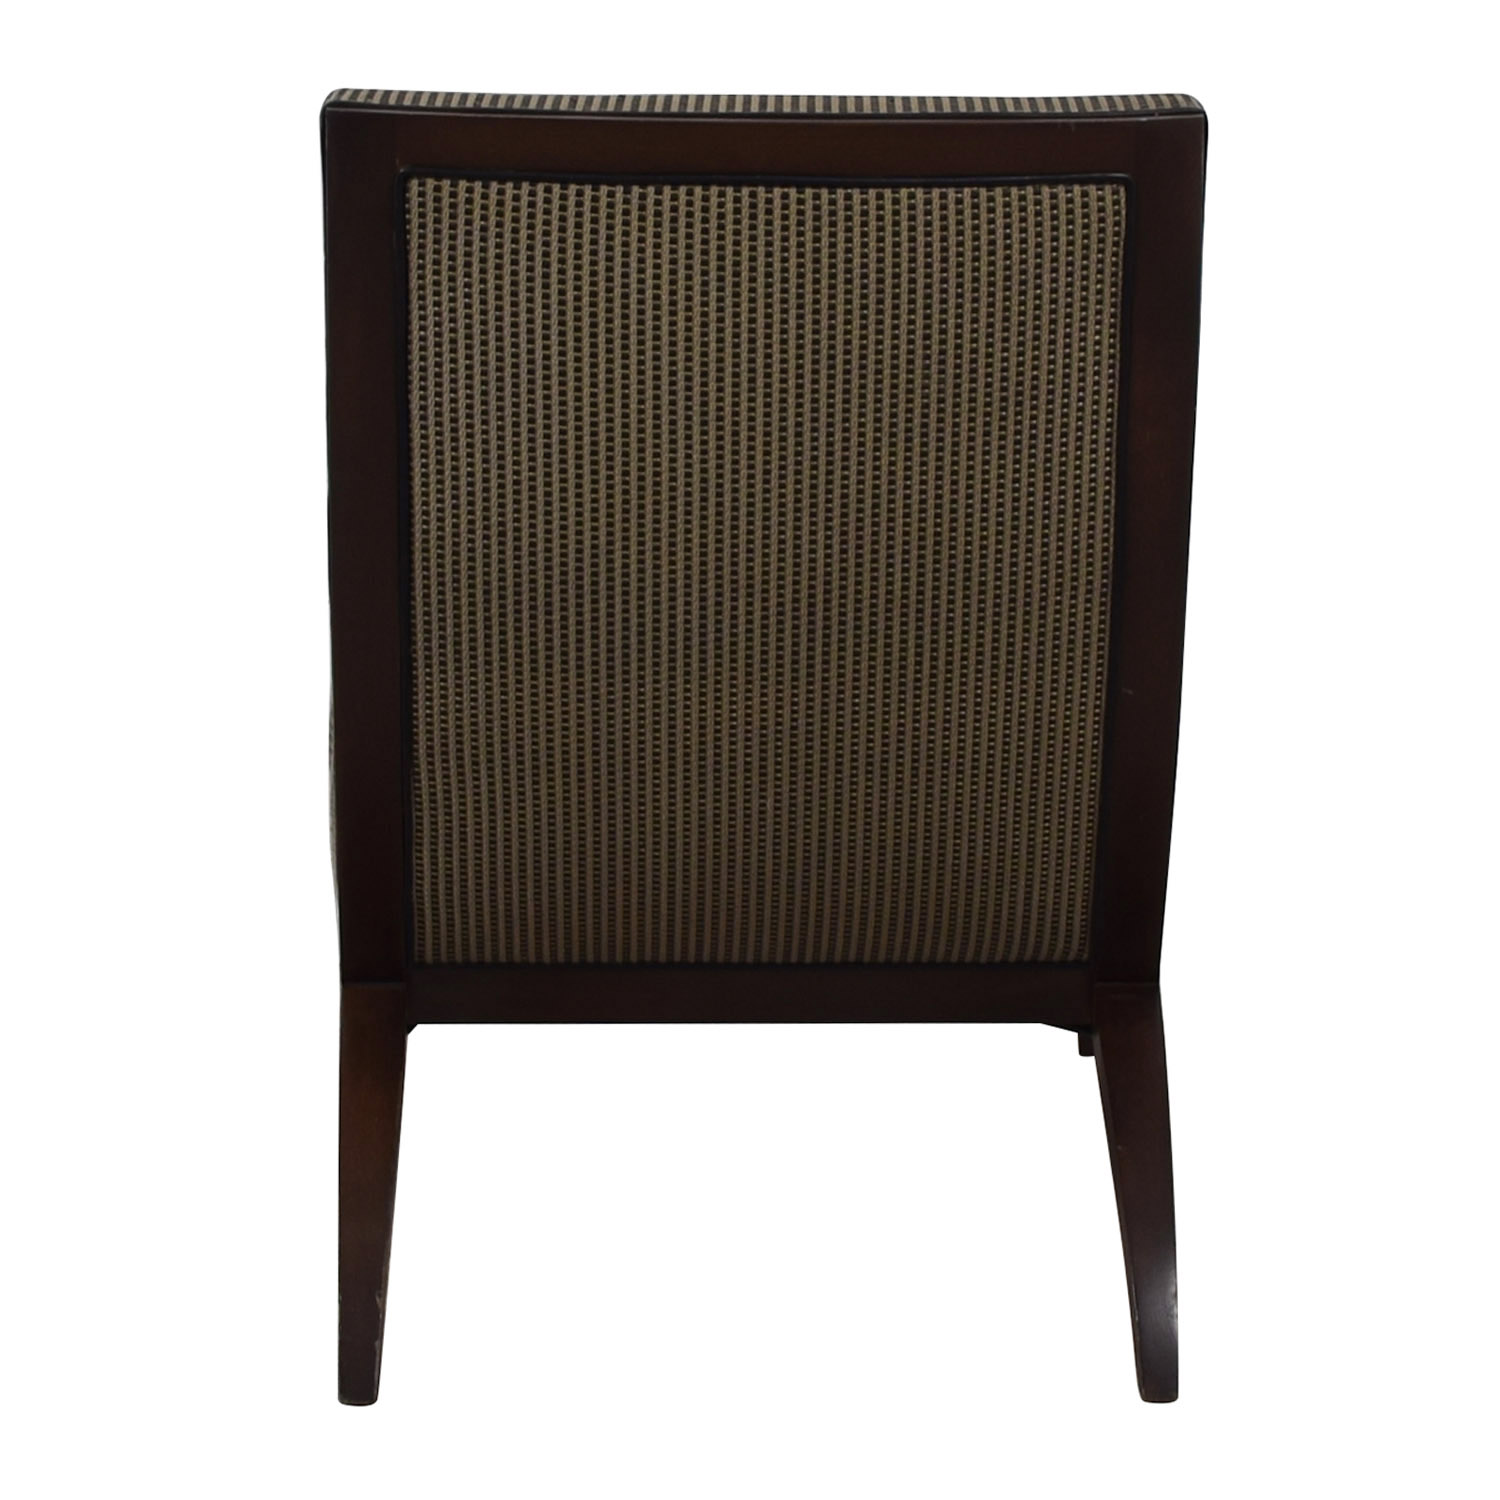 shop Furniture Masters Furniture Masters Brown Tweed Upholstered Accent Chair online